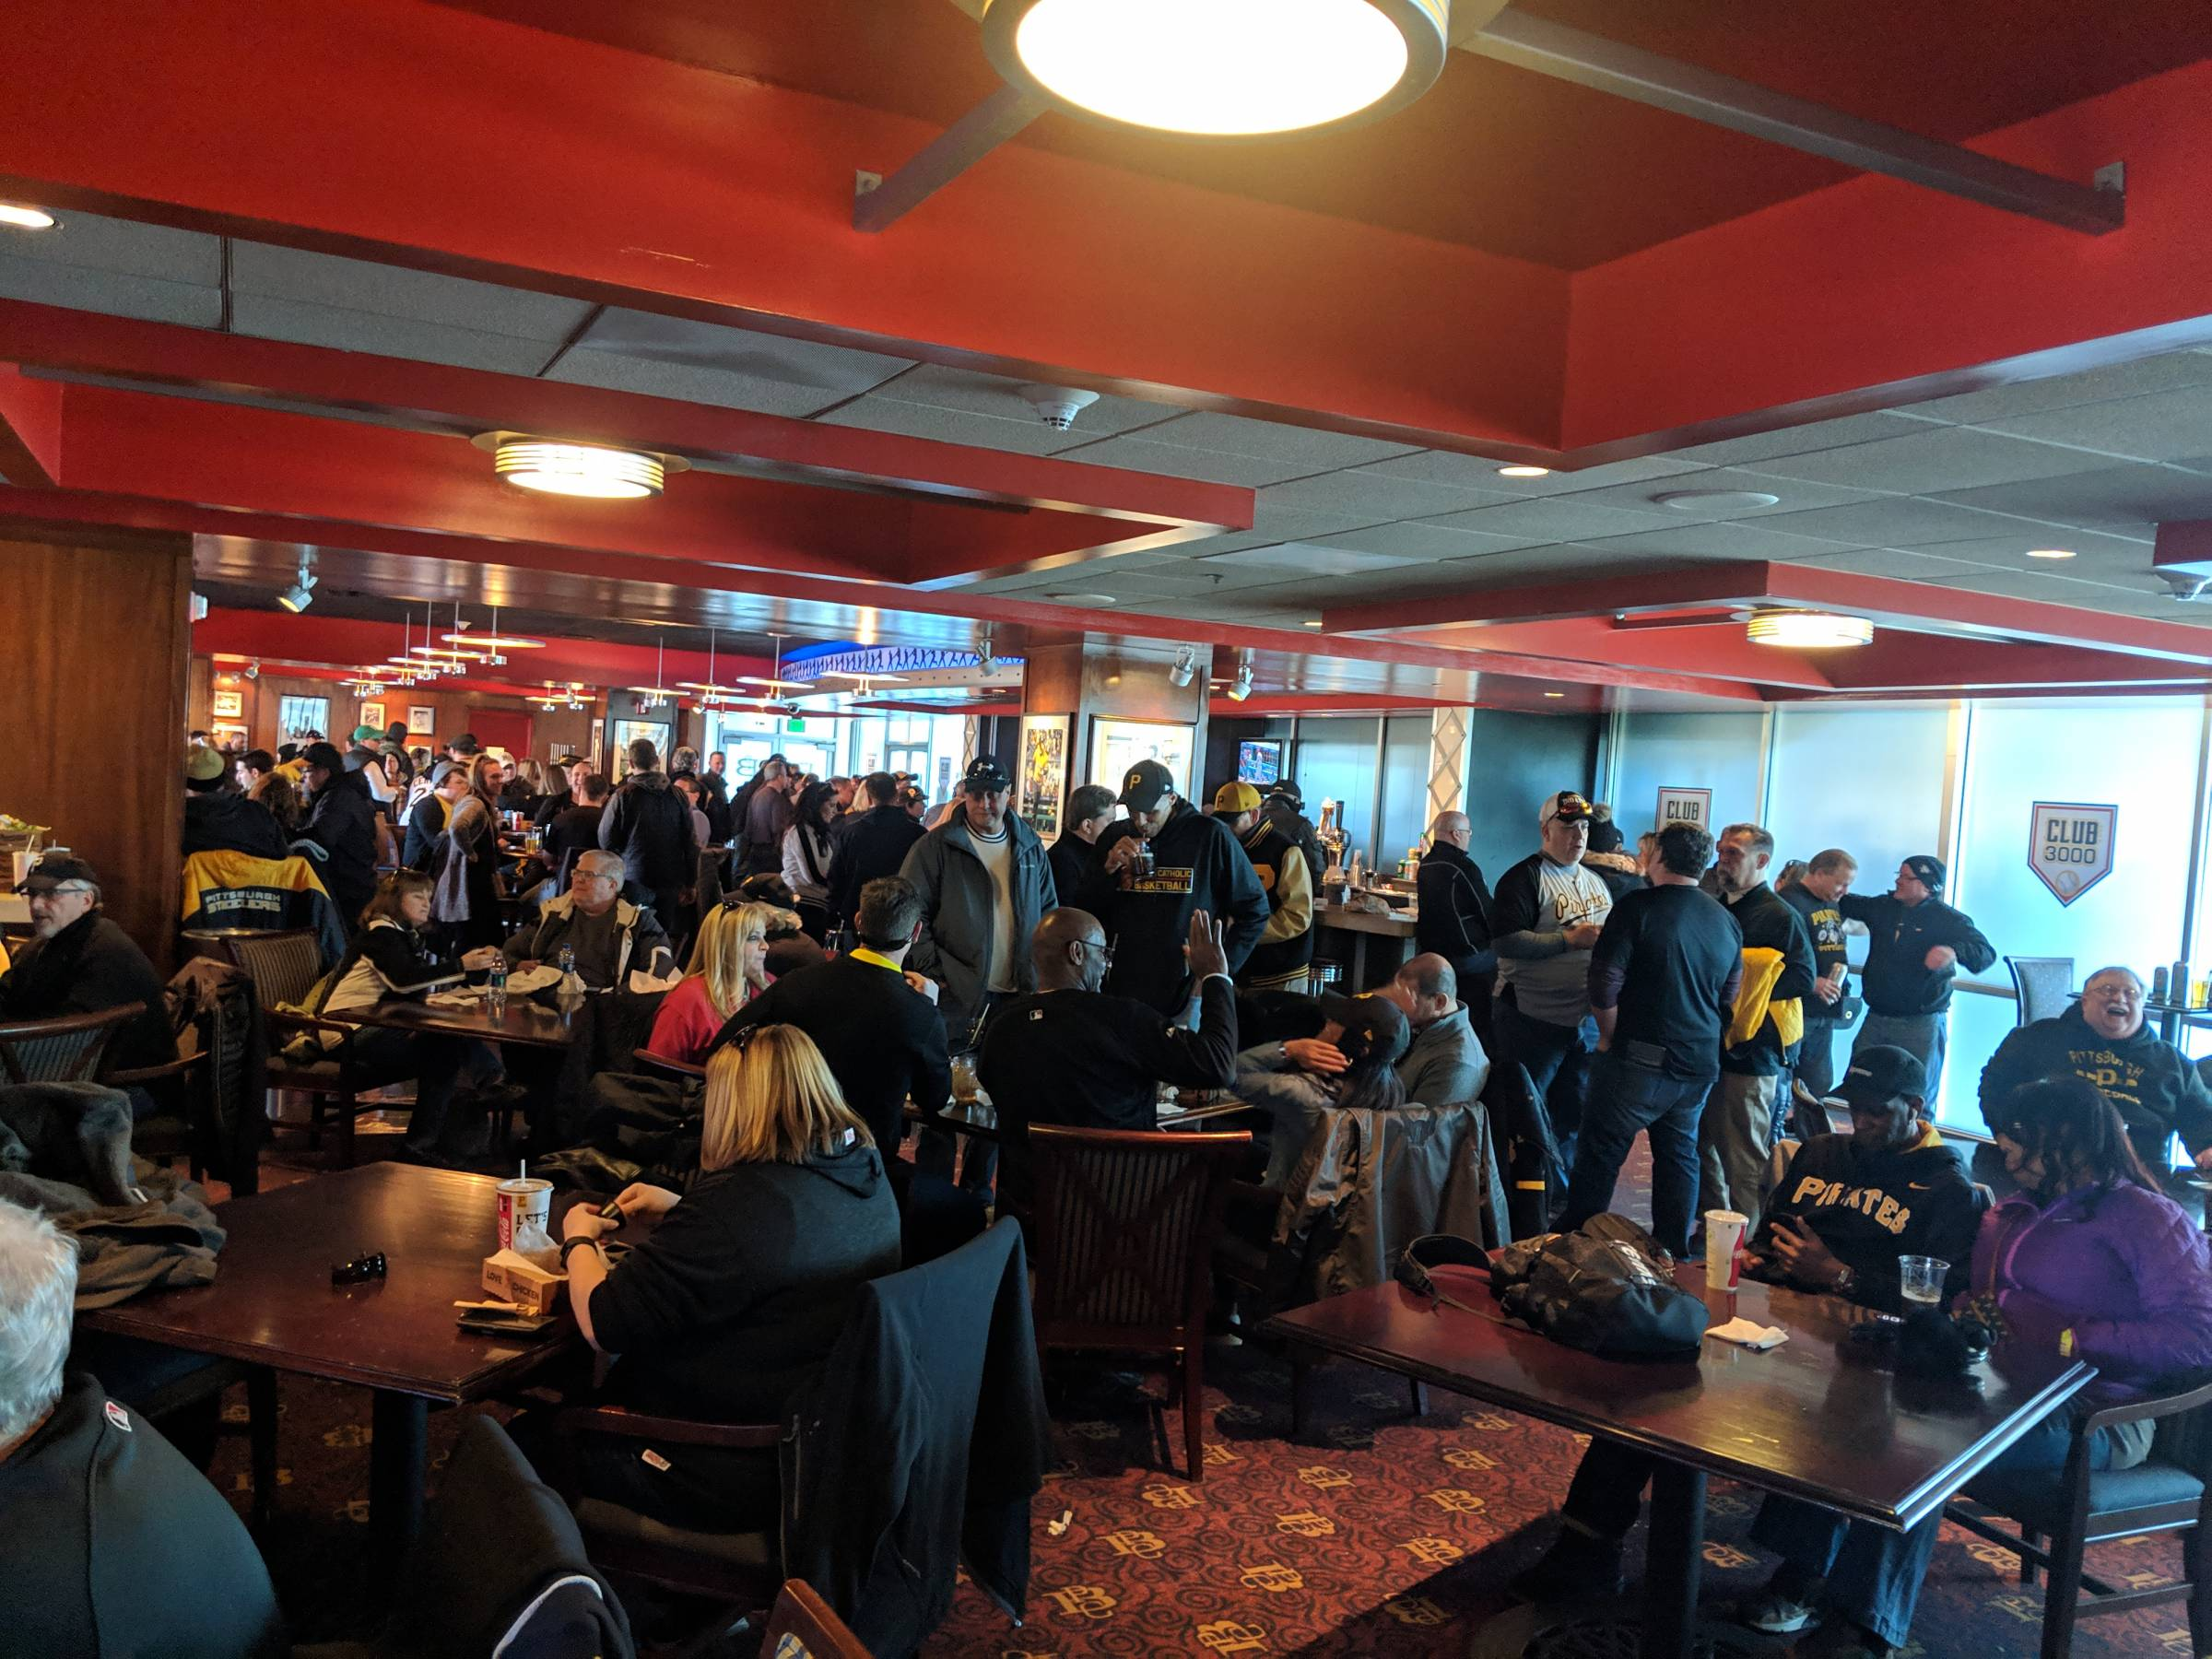 Pittsburgh Pirates Club Seating at PNC Park - RateYourSeats com